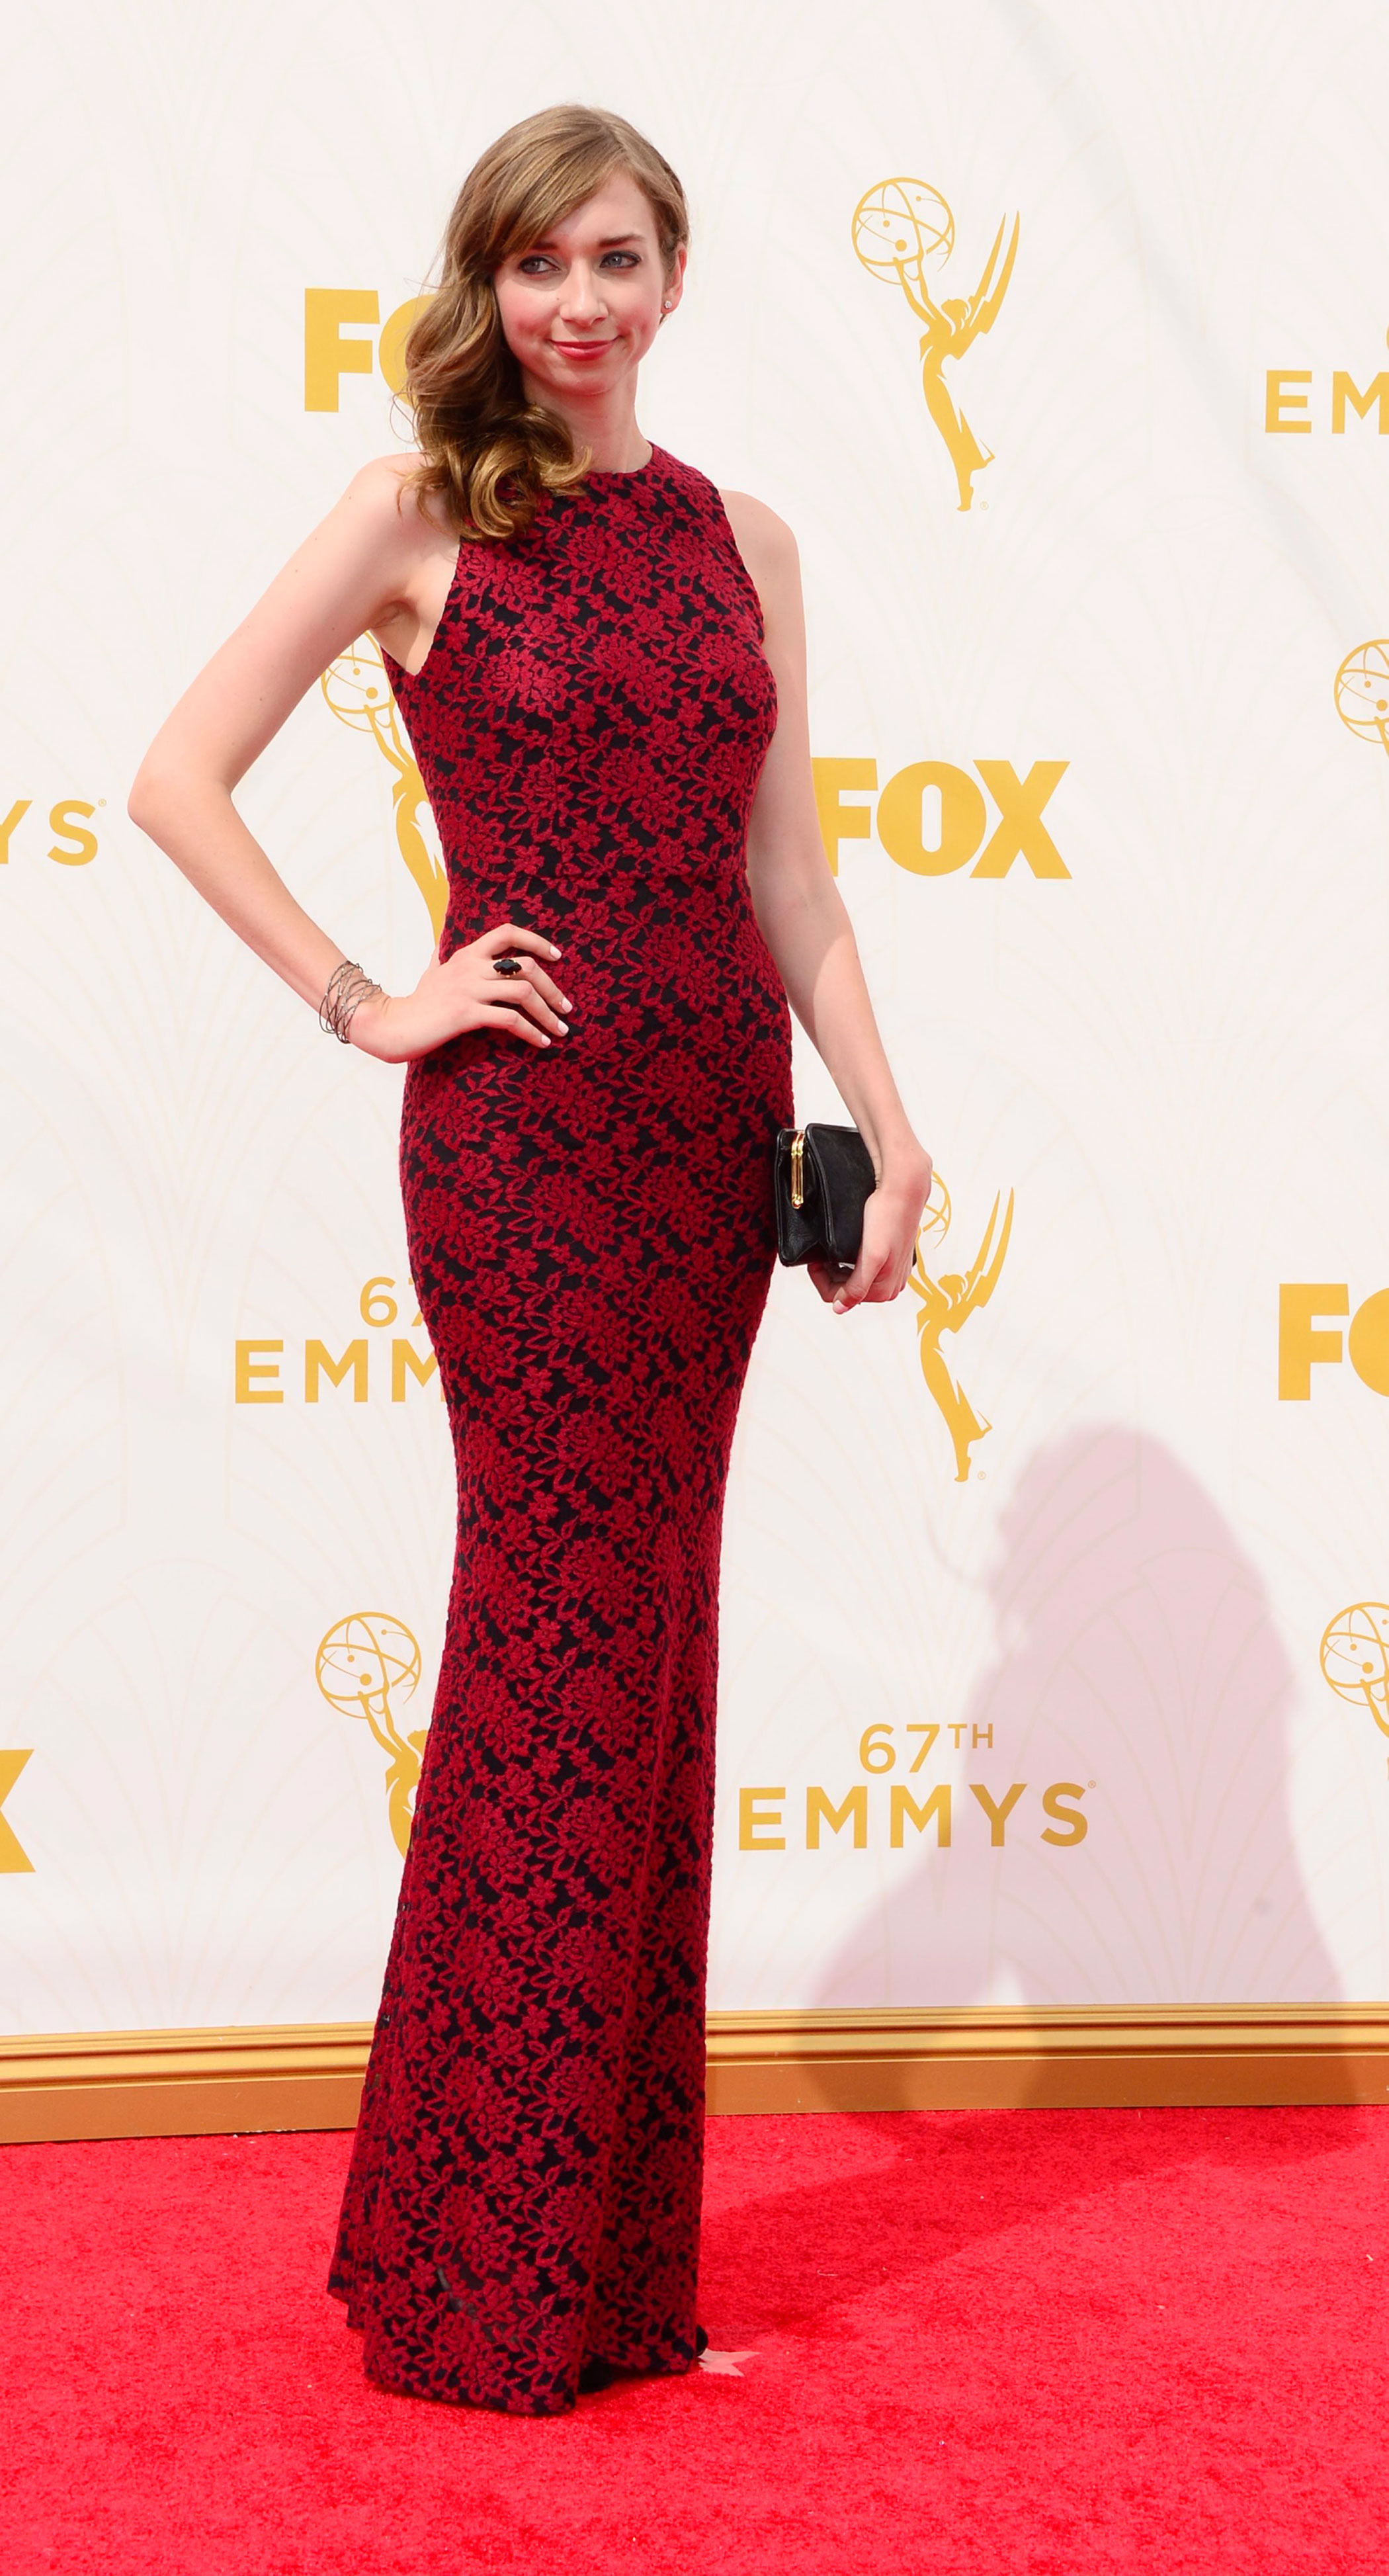 Lauren Lapkus at the 67th Emmy Award on Sept. 20, 2015 in Los Angeles.